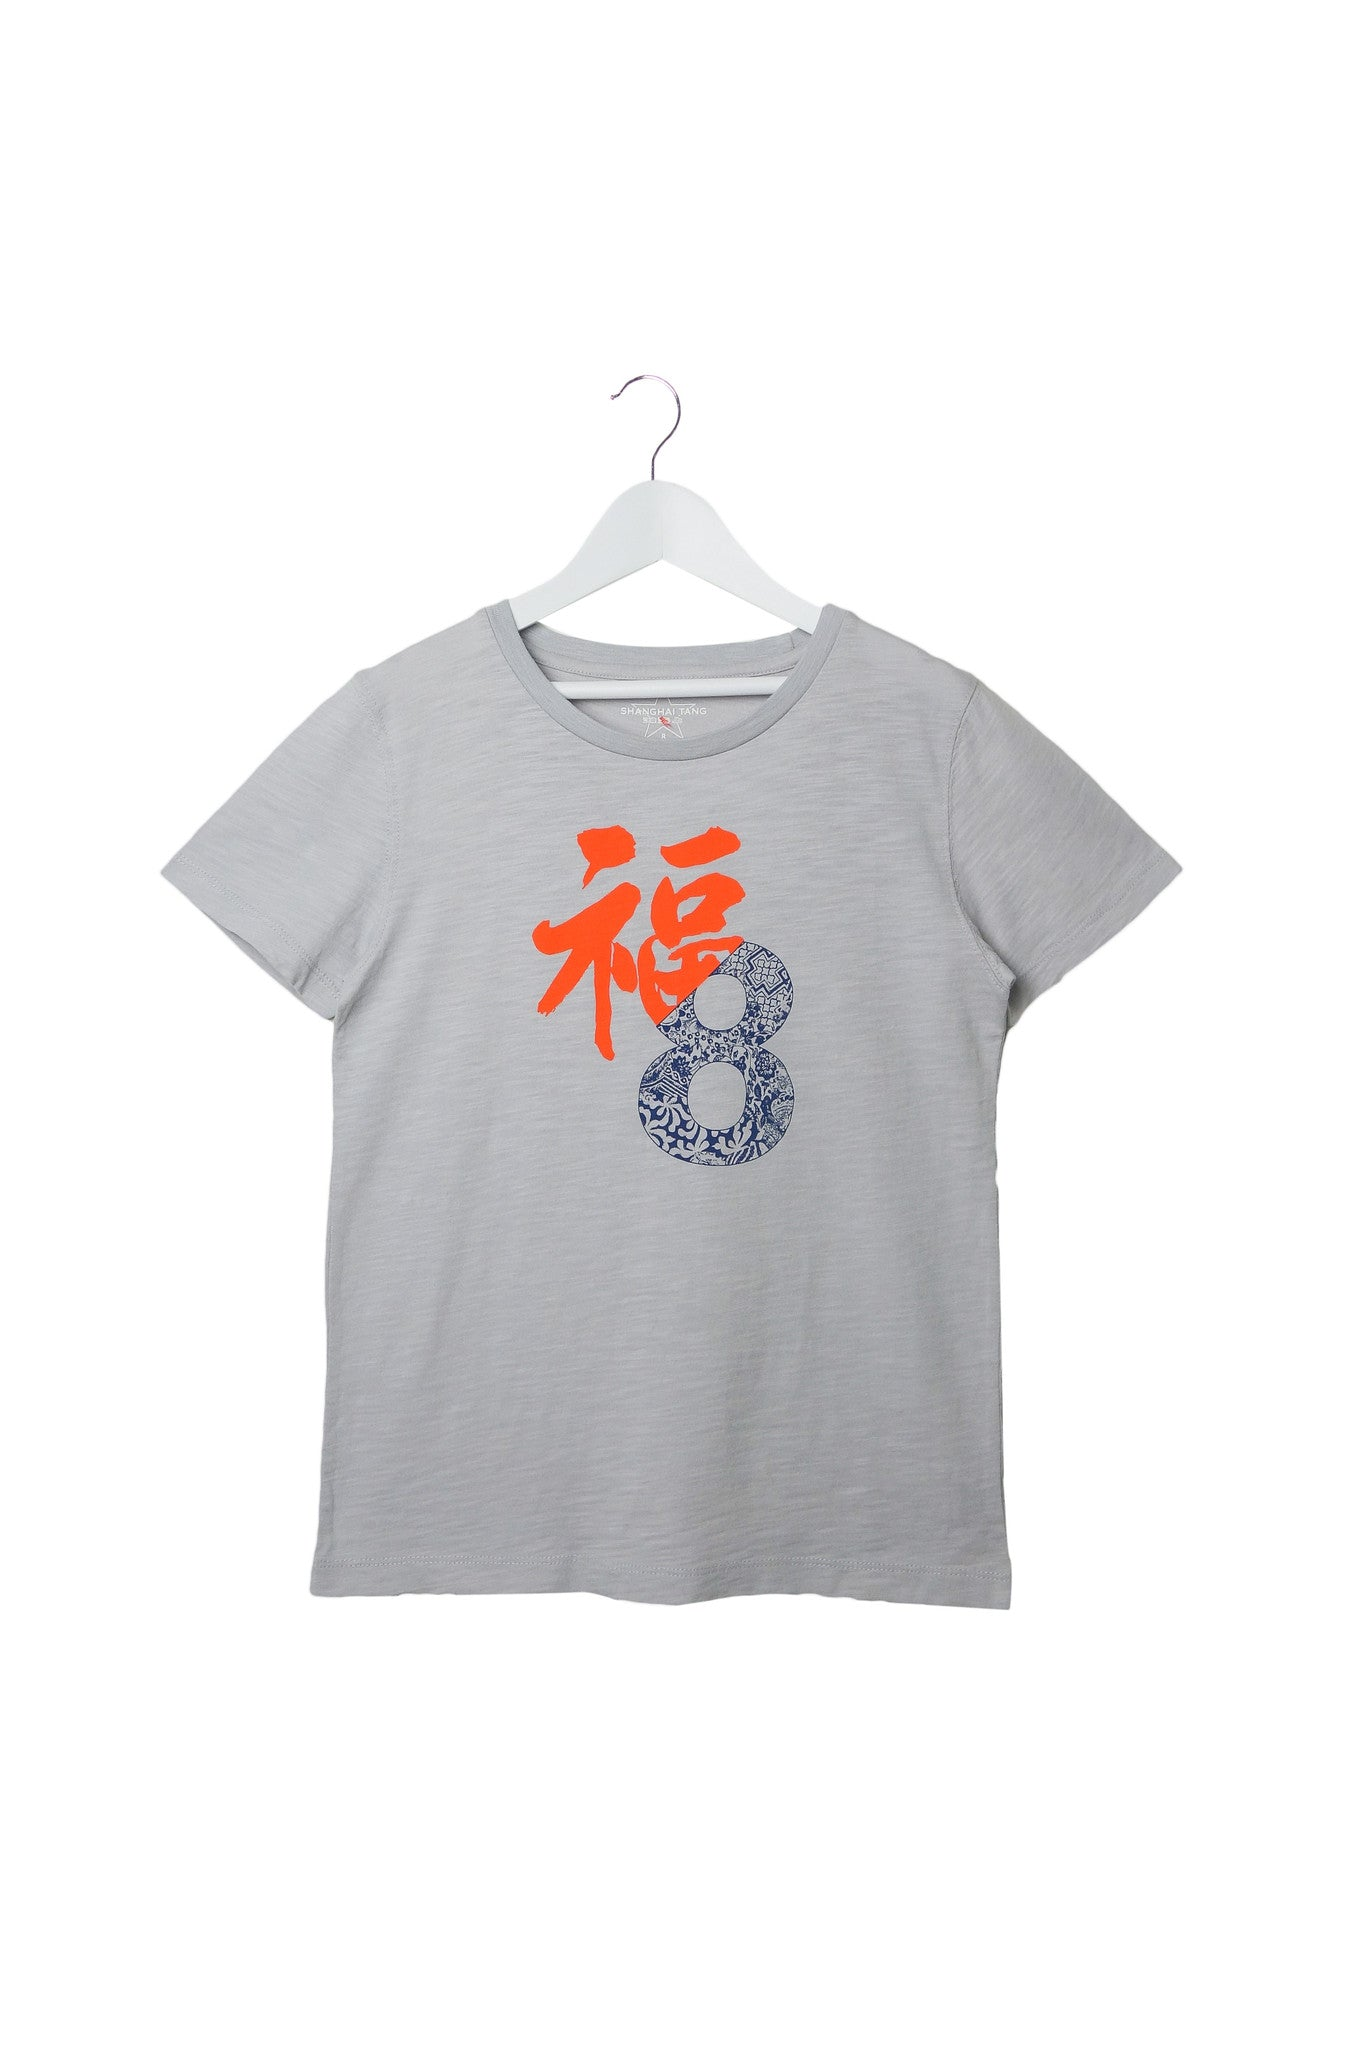 10002935 Shanghai Tang Kids~T-Shirt 8 at Retykle